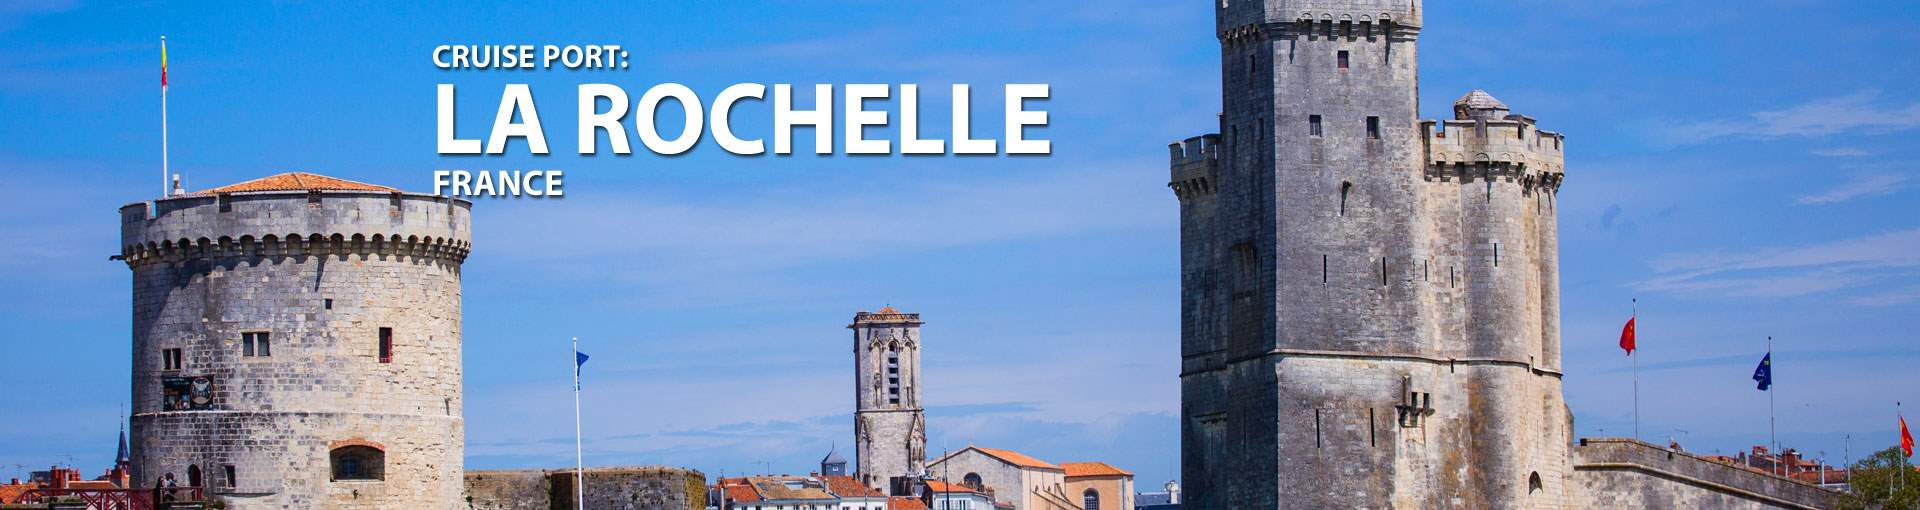 Cruises to La Rochelle, France